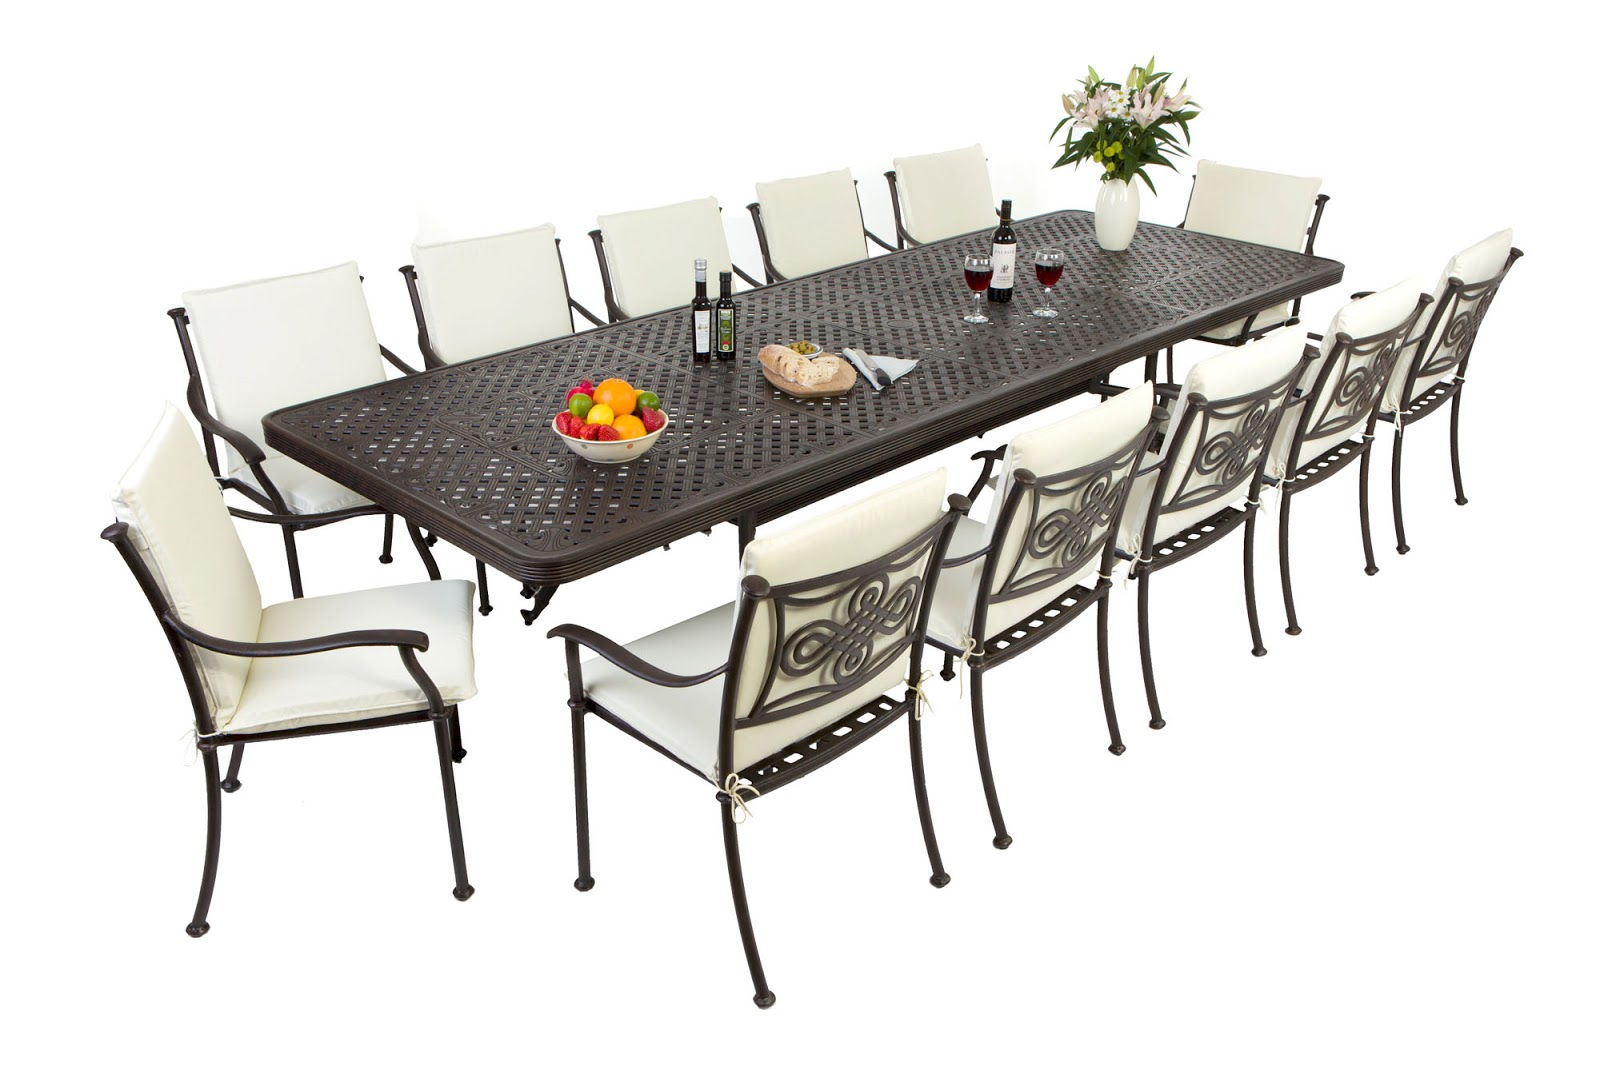 Outside Edge Garden Furniture Blog: The Biggest Extending